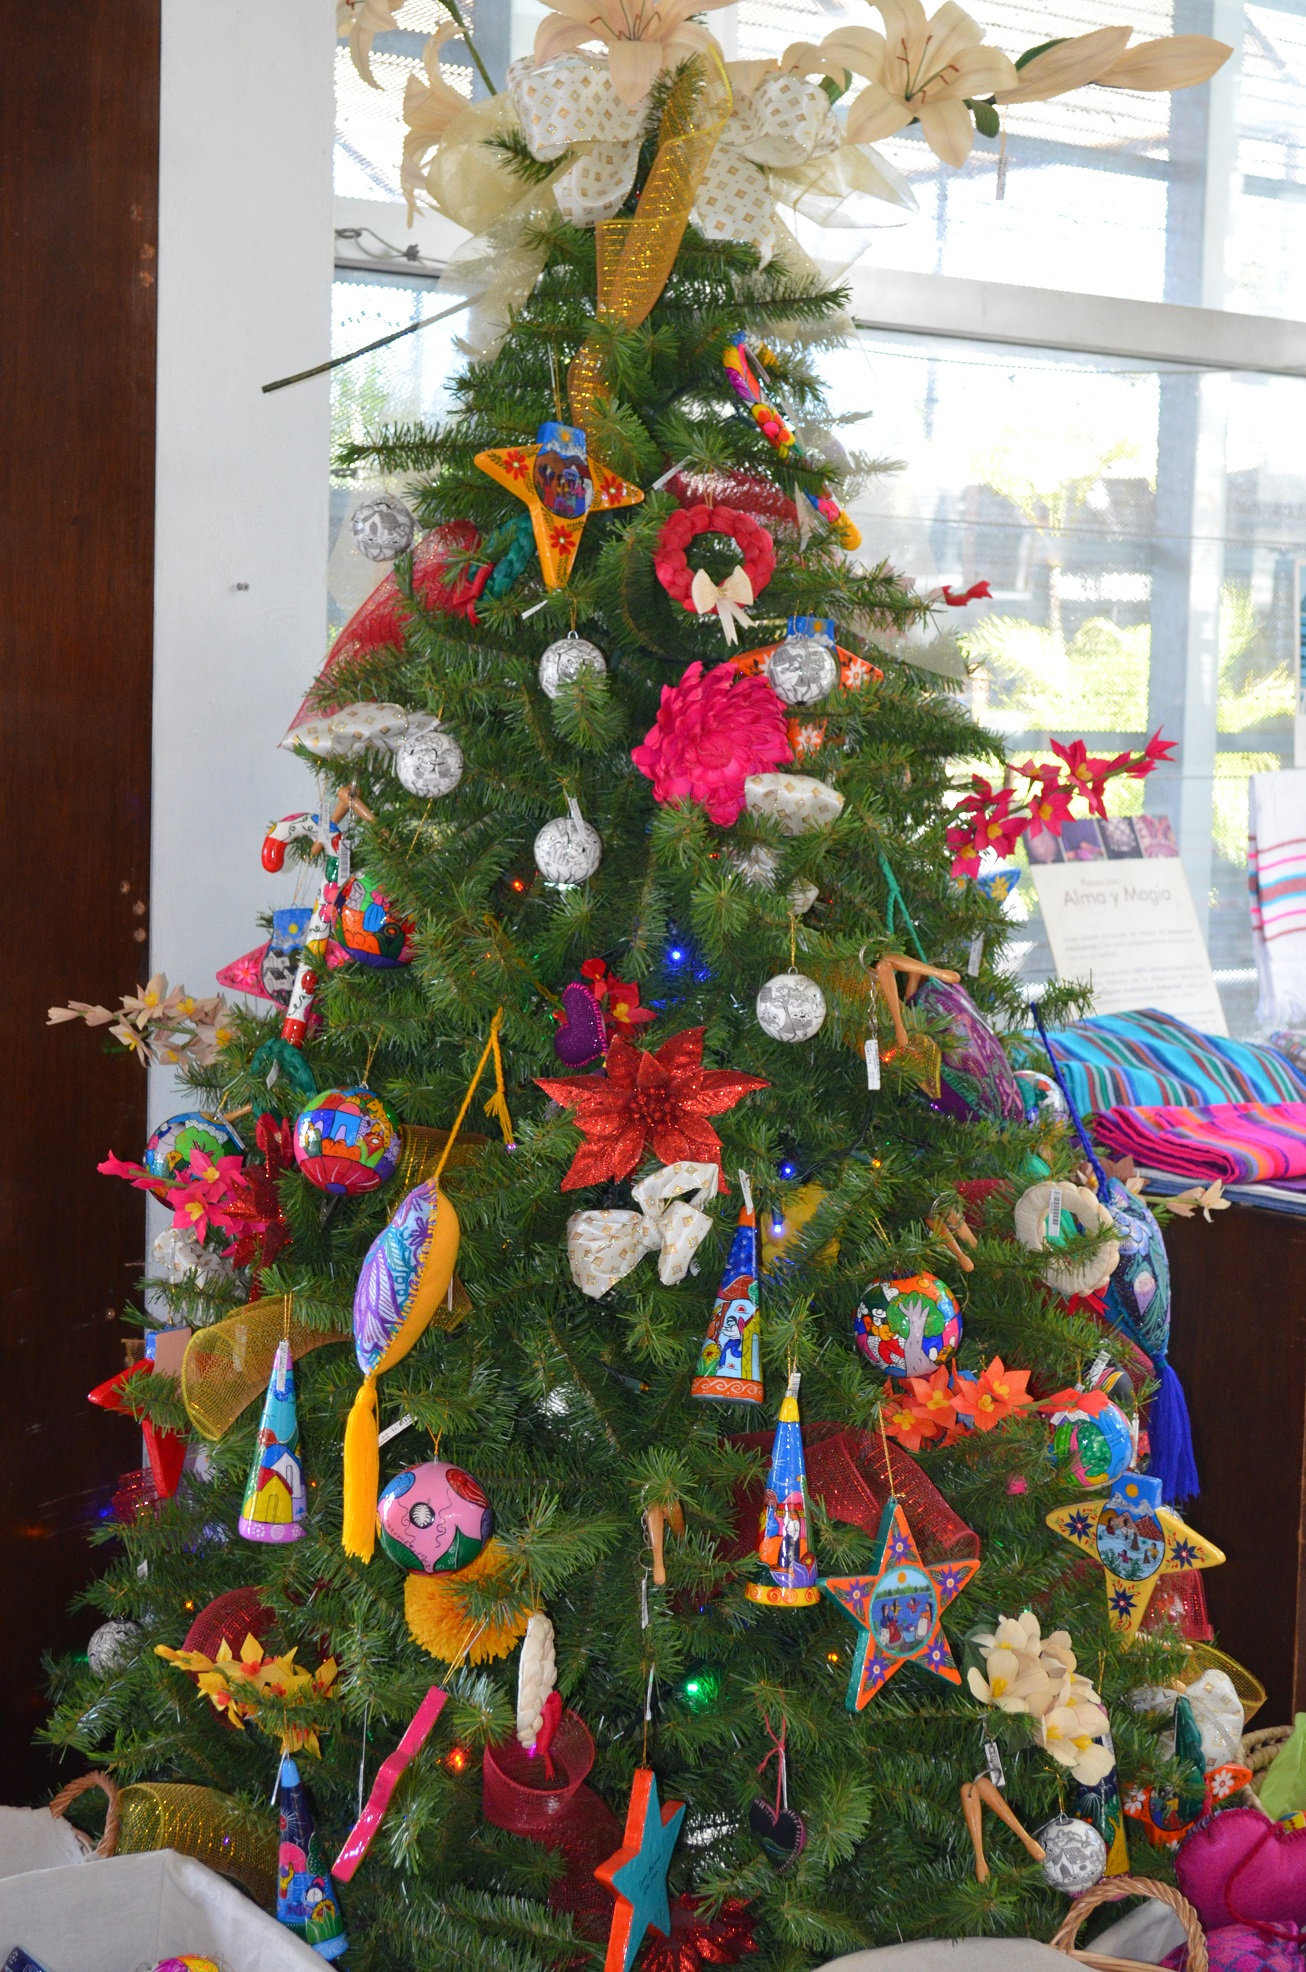 Mexican Christmas Decorations.Mexican Christmas December Holidays Discover Mexico Park